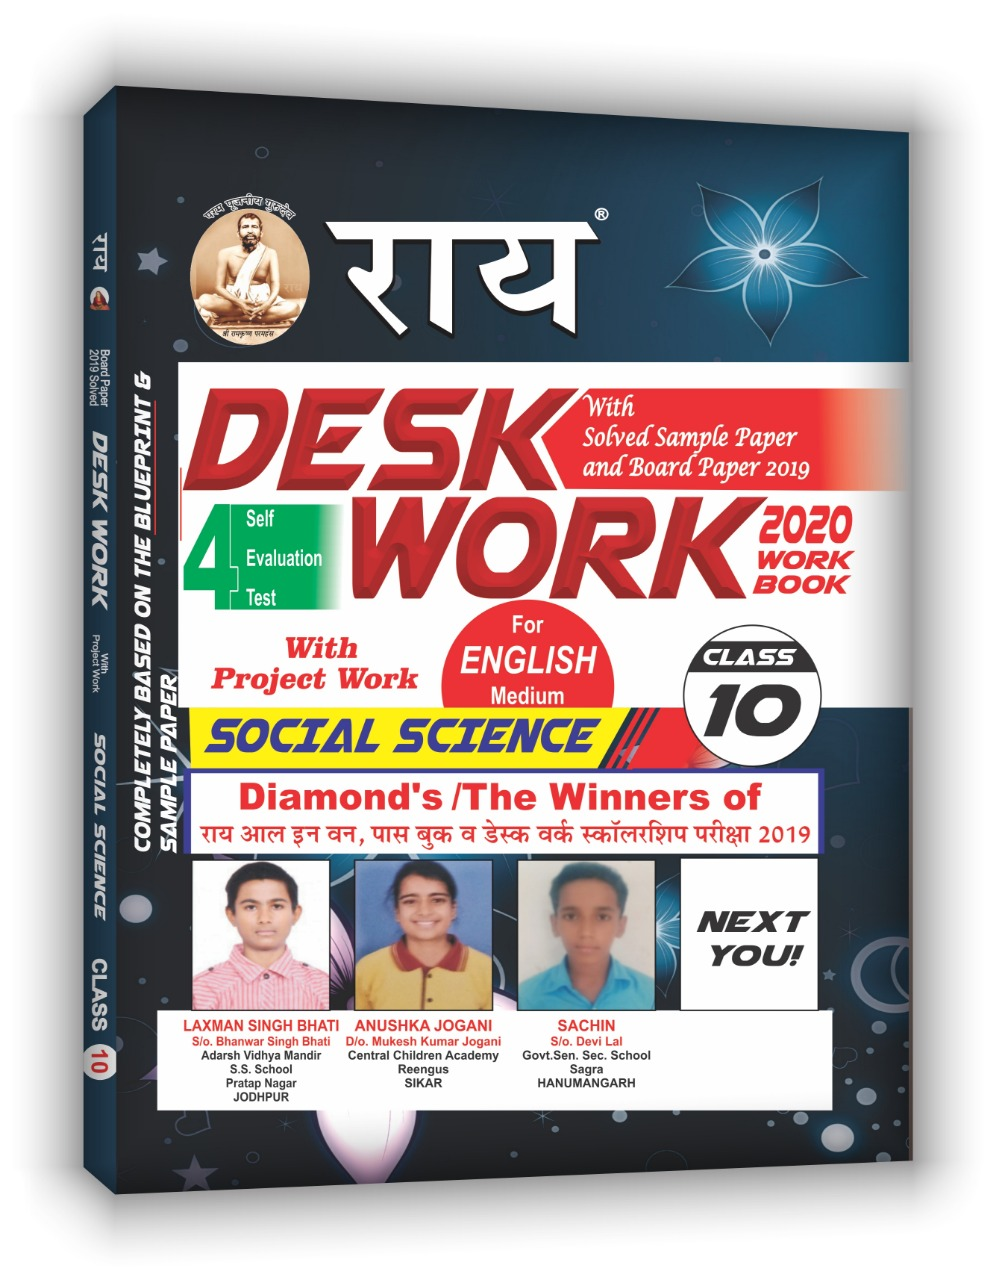 Rai Desk Work 2020 Social Science Class 10th English Medium with free Scholarship Exam Form( Blue Print , Board Paper 2019 Solved ,1 Board Sample Paper+ 8 Model Papers +4 Self Evaluation Papers ) ( Social Science ,10th) ( Desk work for RBSE English Medium) ( Rai Scholarship Exam Form class 10th E.M.)